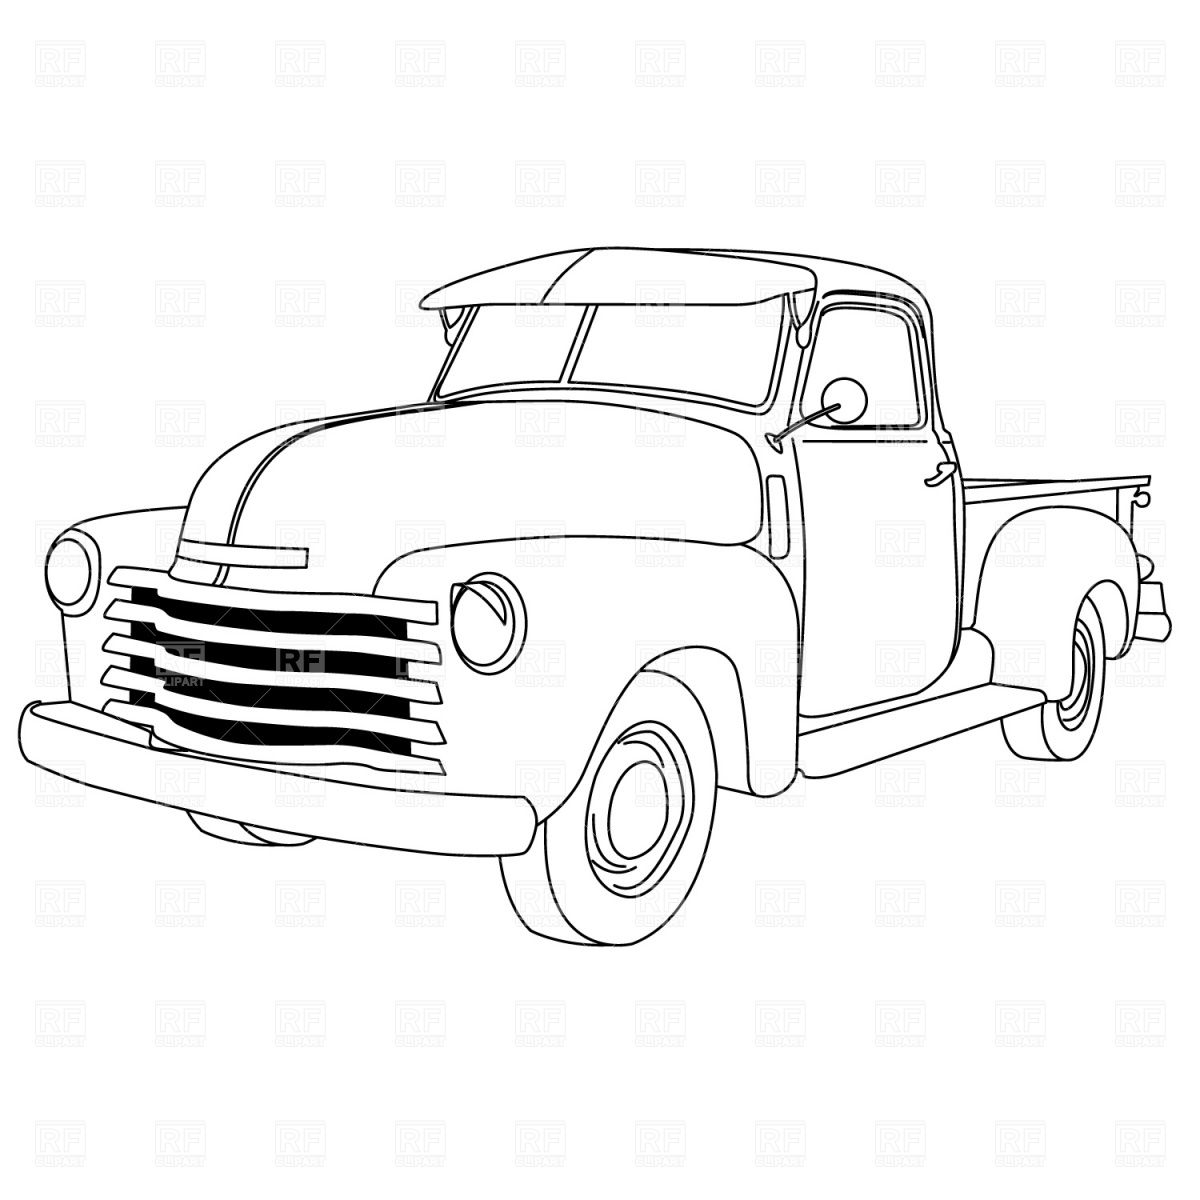 1200x1200 Old Trucks Coloring American Pick Up Truck Colori On Ford Coloring